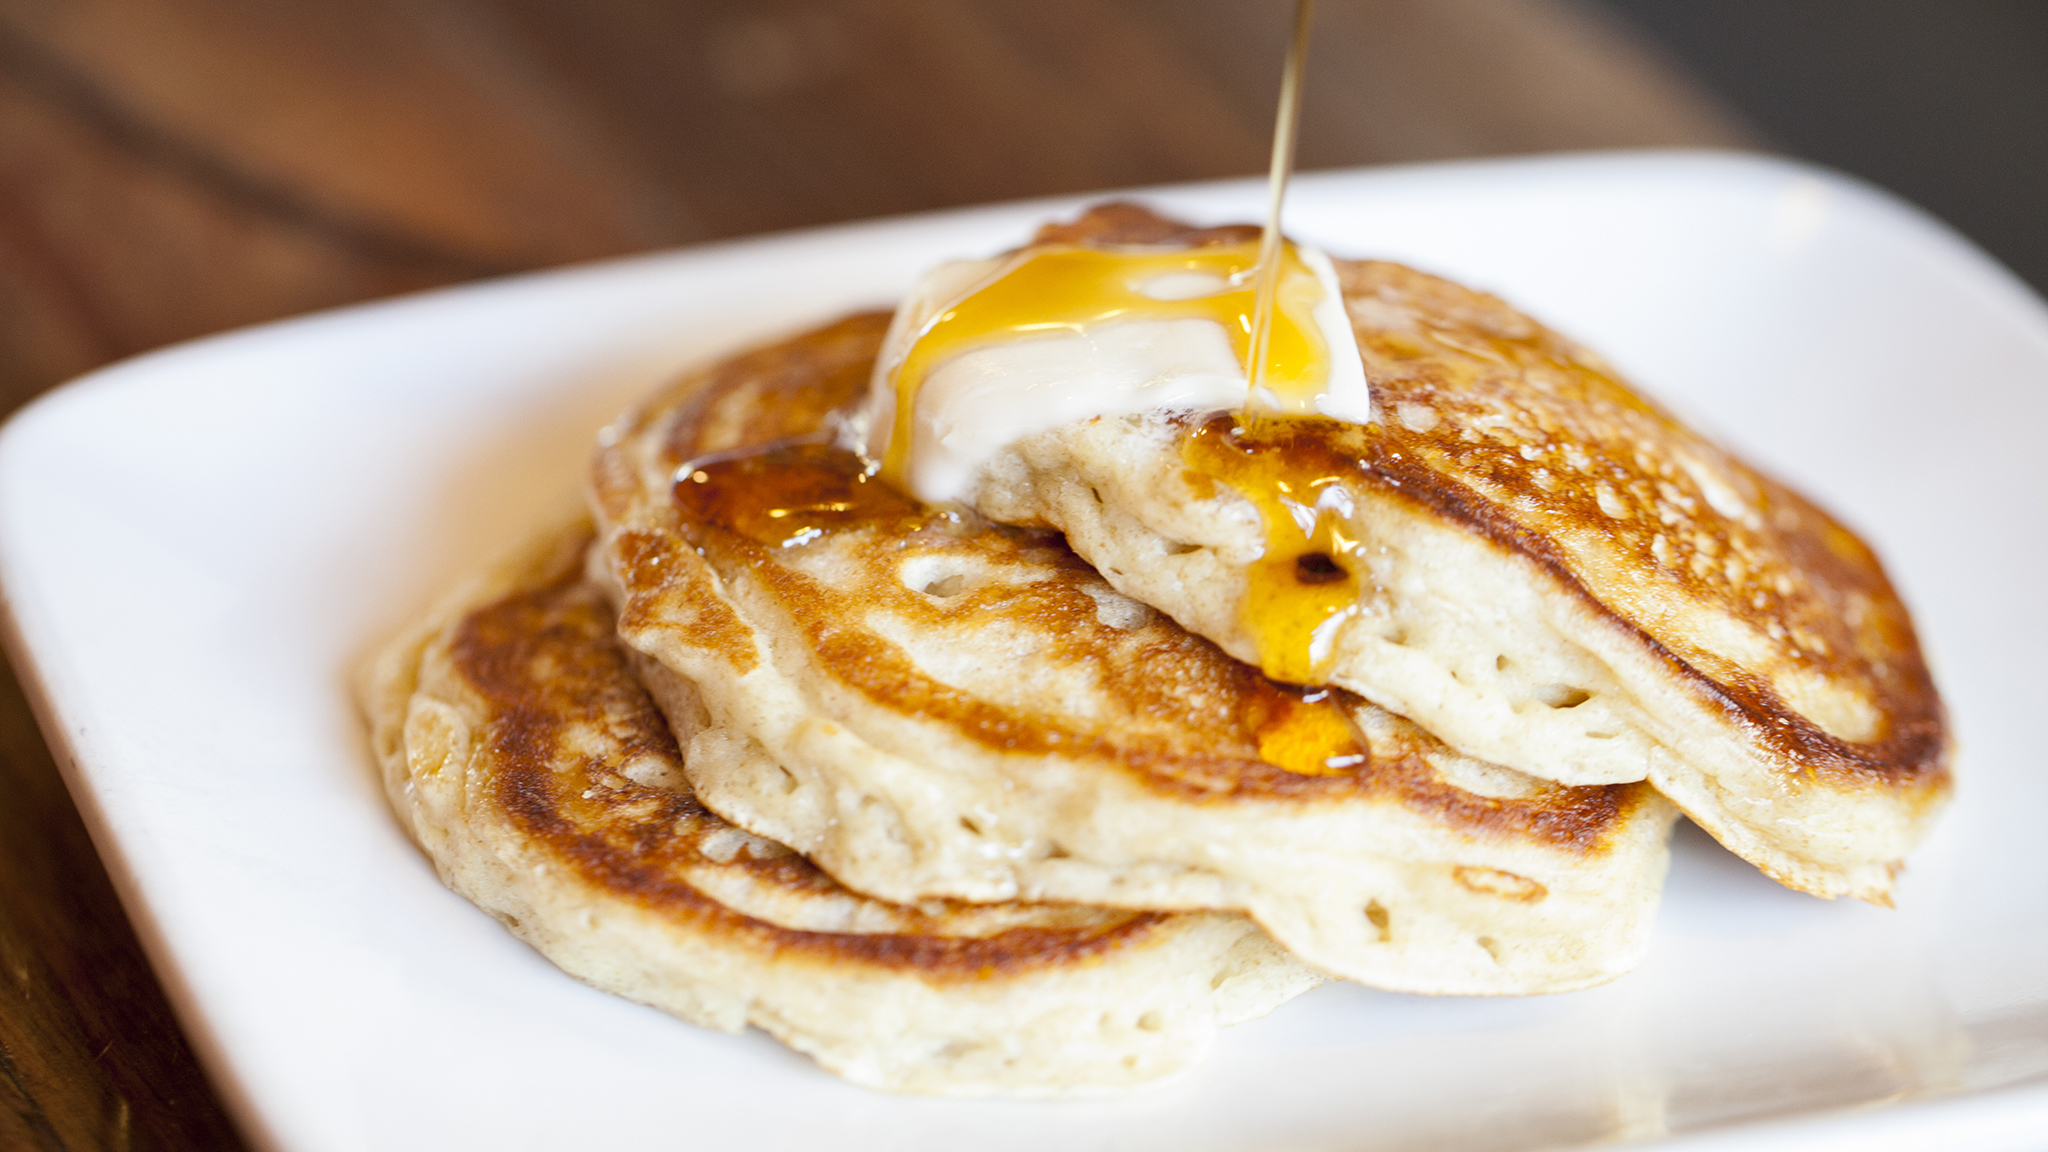 Buttermilk rye pancakes at The Sycamore Kitchen